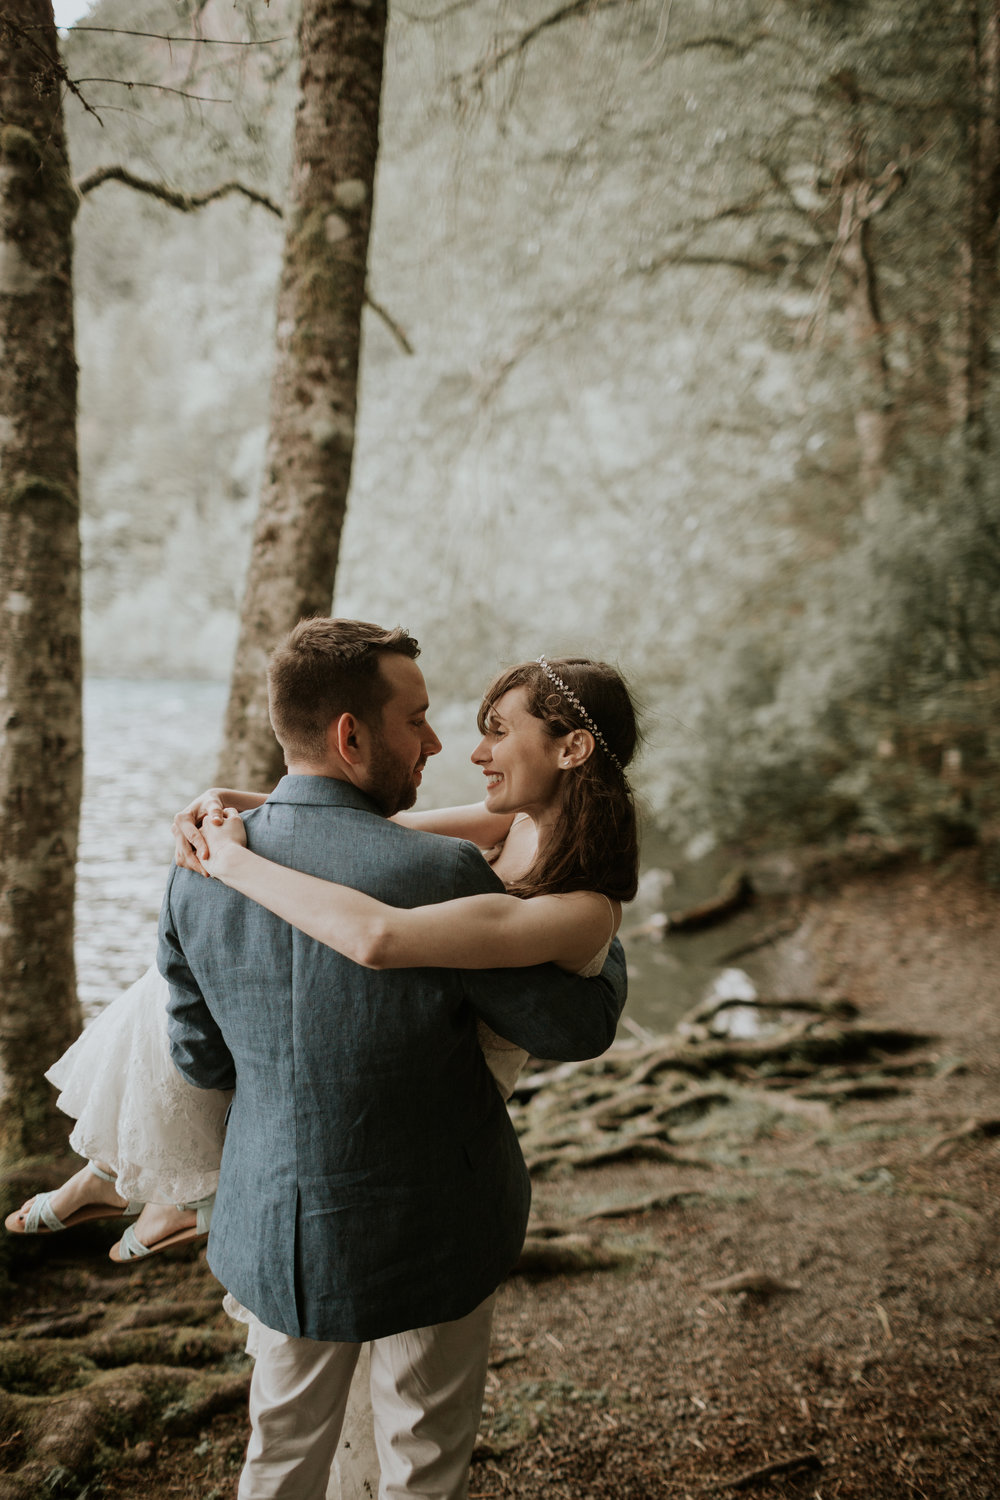 PNW-elopement-wedding-engagement-olympic national park-port angeles-hurricane ridge-lake crescent-kayla dawn photography- photographer-photography-kayladawnphoto-260.jpg